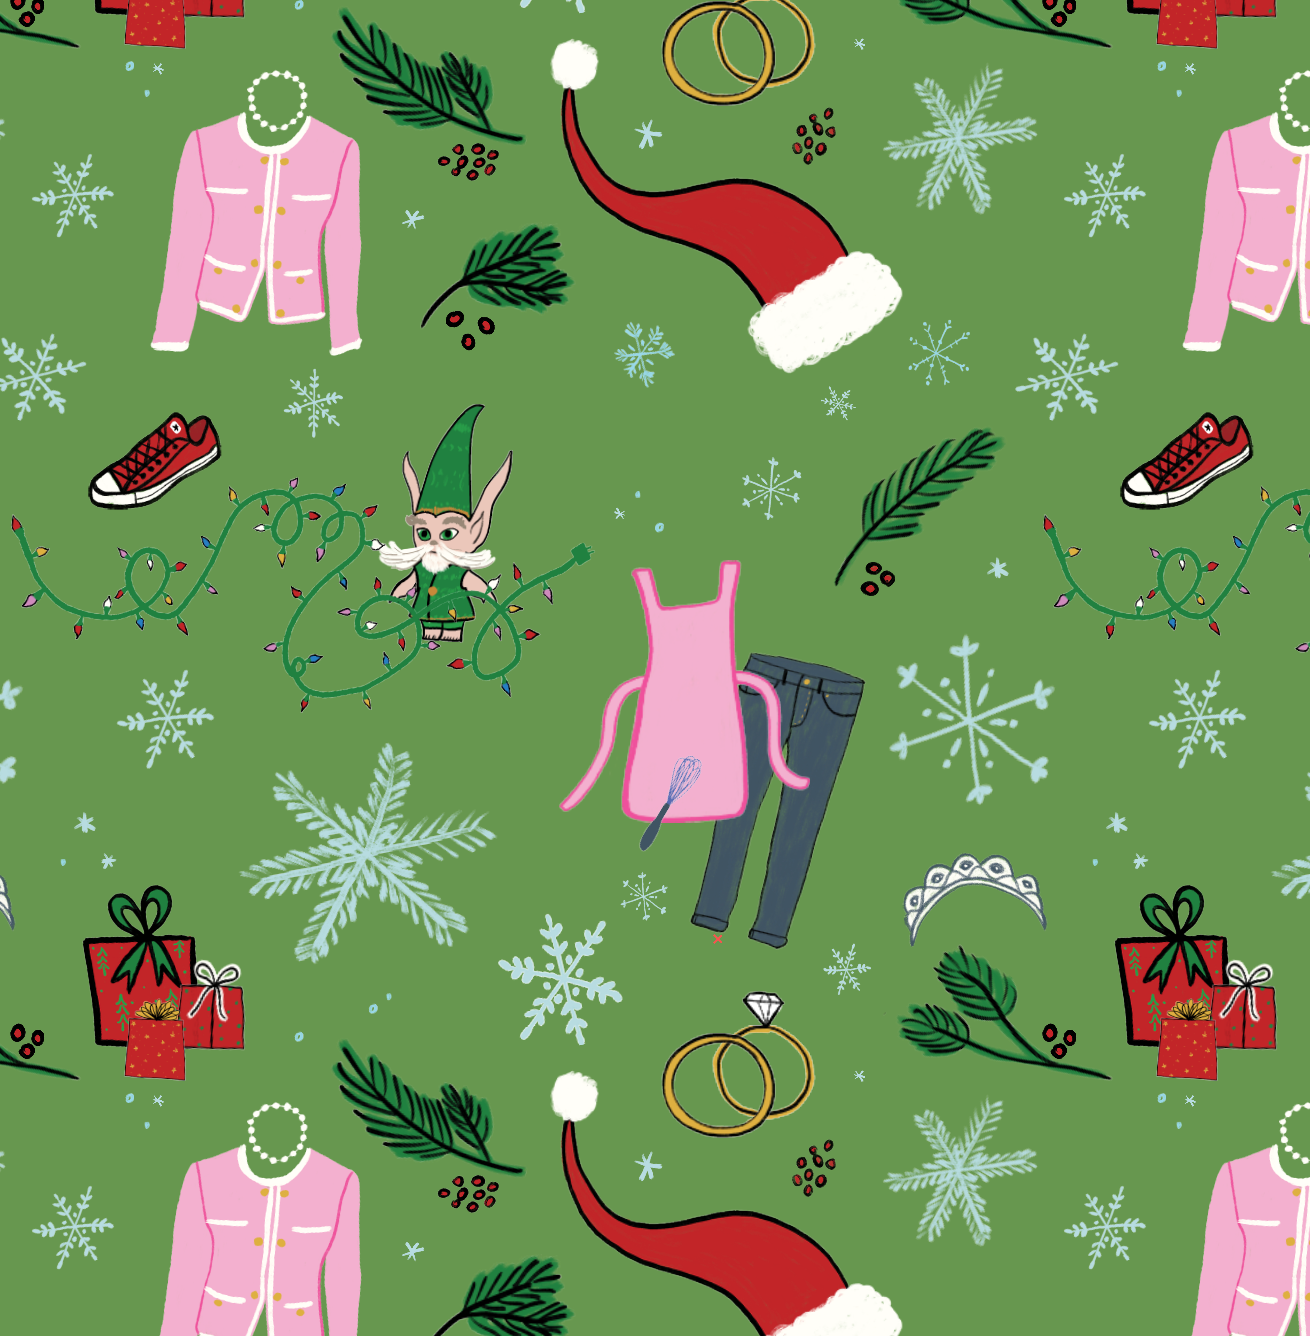 Pattern by Erika Firm for Netflix holiday 2018 patterns